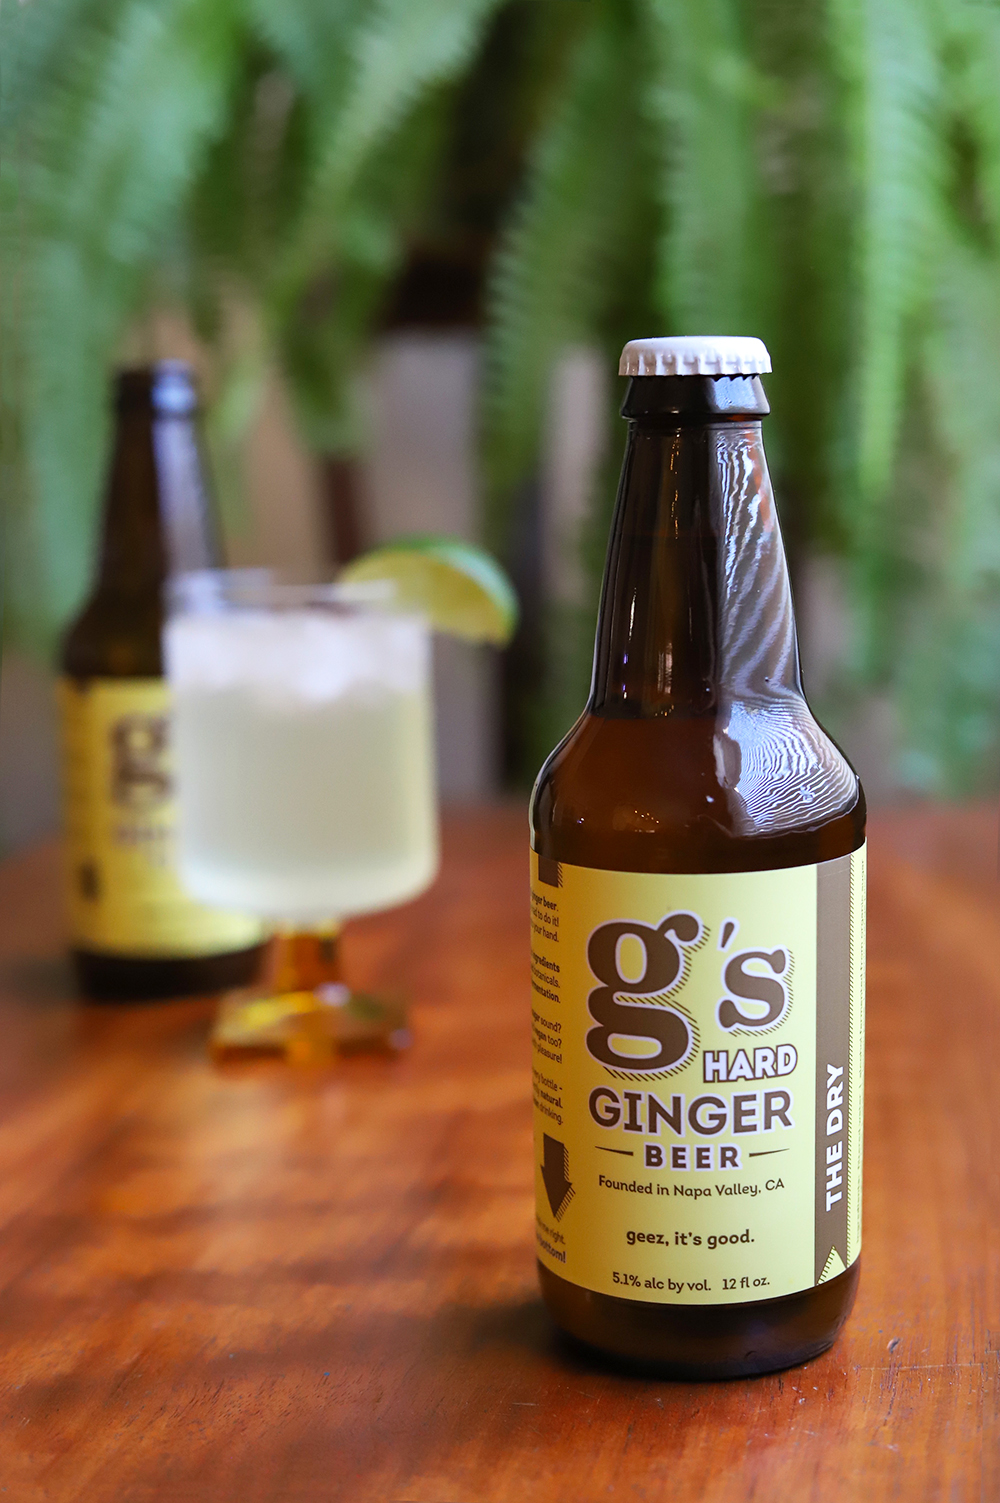 PERFECT MIXER - THE DRY is brewed with organic ginger, lemon and orange juice and fermented till there is only <1g sugar remaining - making this the perfect mixer for Moscow Mule - Kentucky Mule - Gin-GIn Mule and your go-to cocktail recipe.